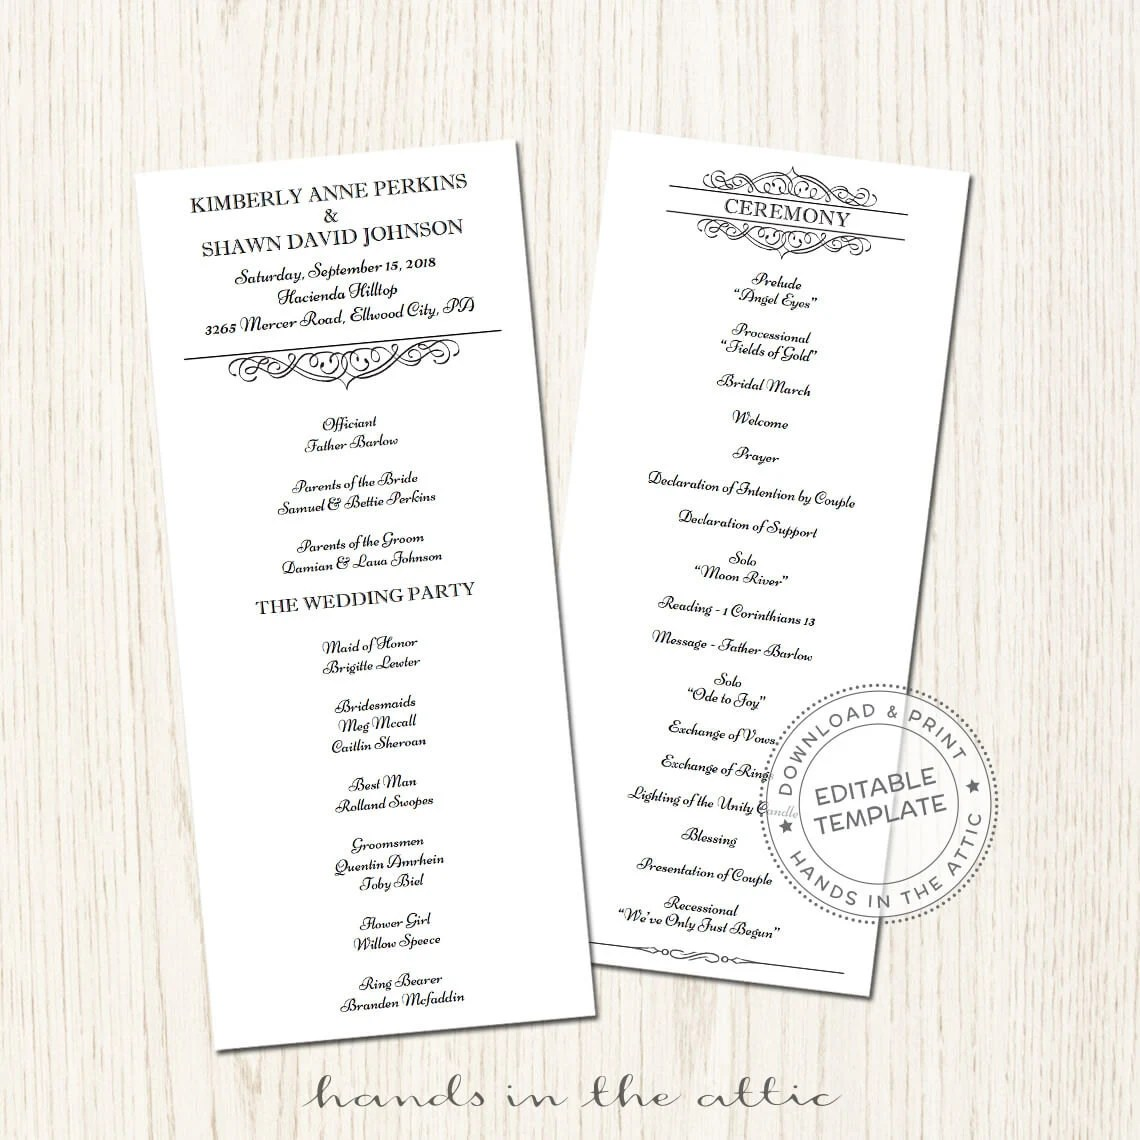 Day of schedule, printable wedding program template